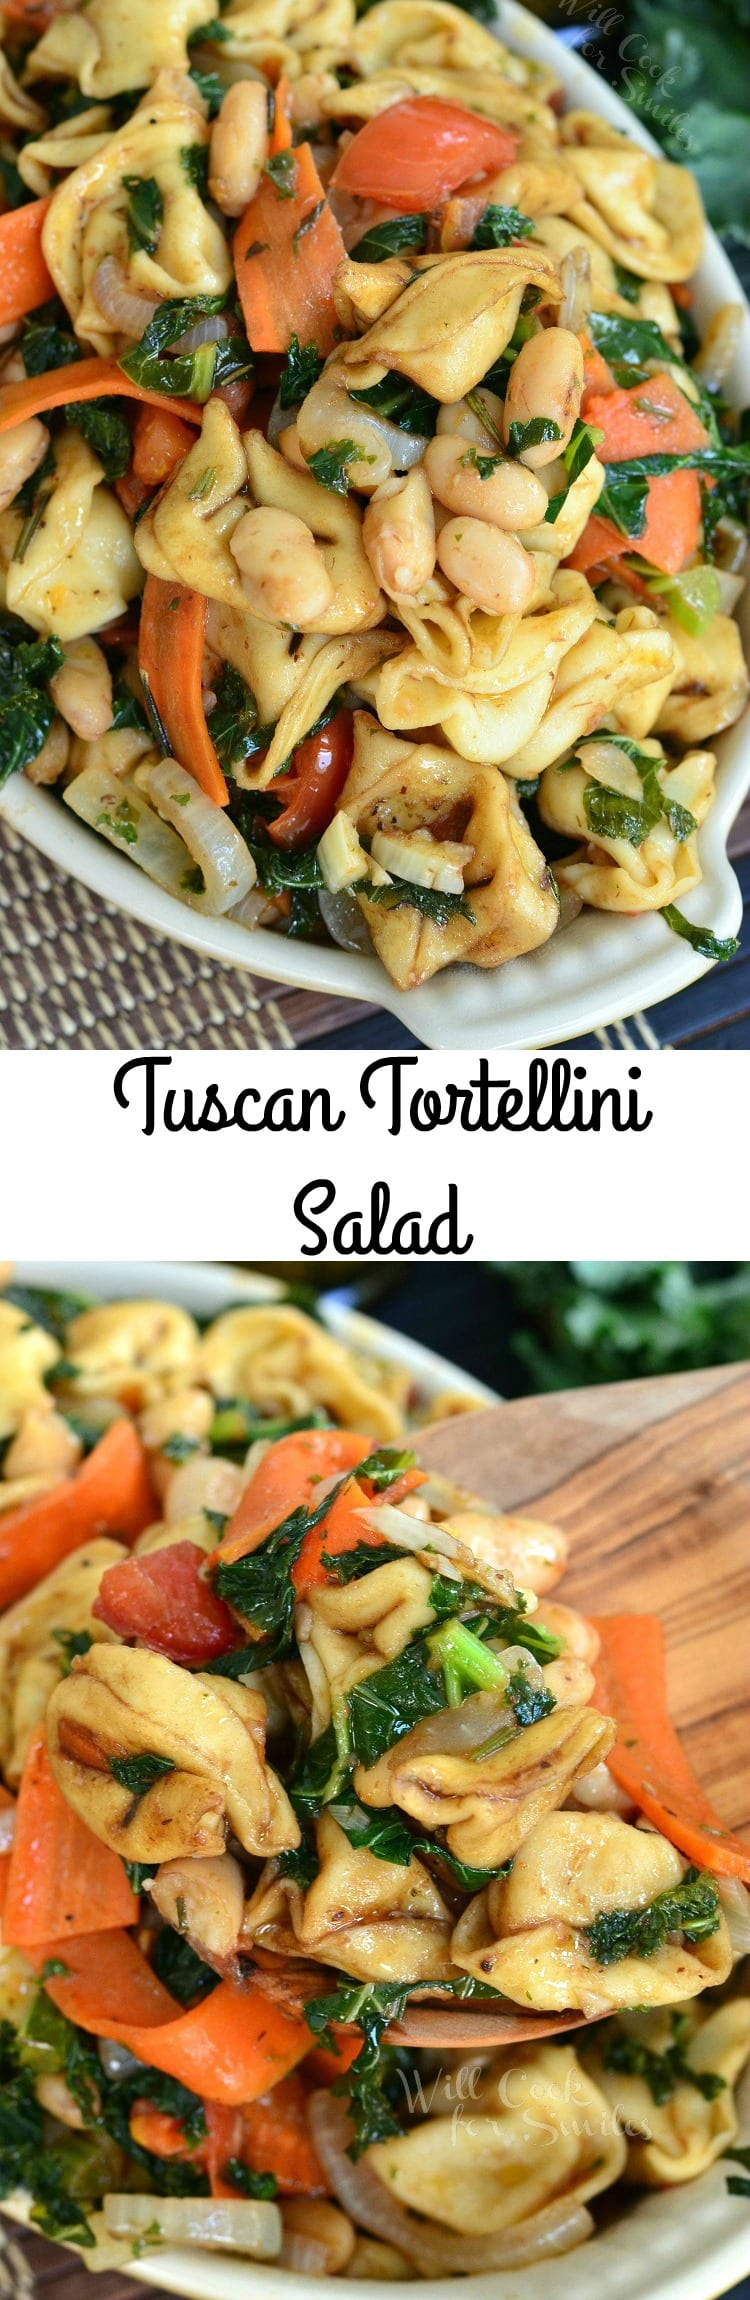 Tuscan Tortellini Salad. Wonderful side dish that can be serves warm or cold. Made in a Tuscan style with beans, kale, tomatoes, carrots, olive oil, balsamic vinegar, and herbs.